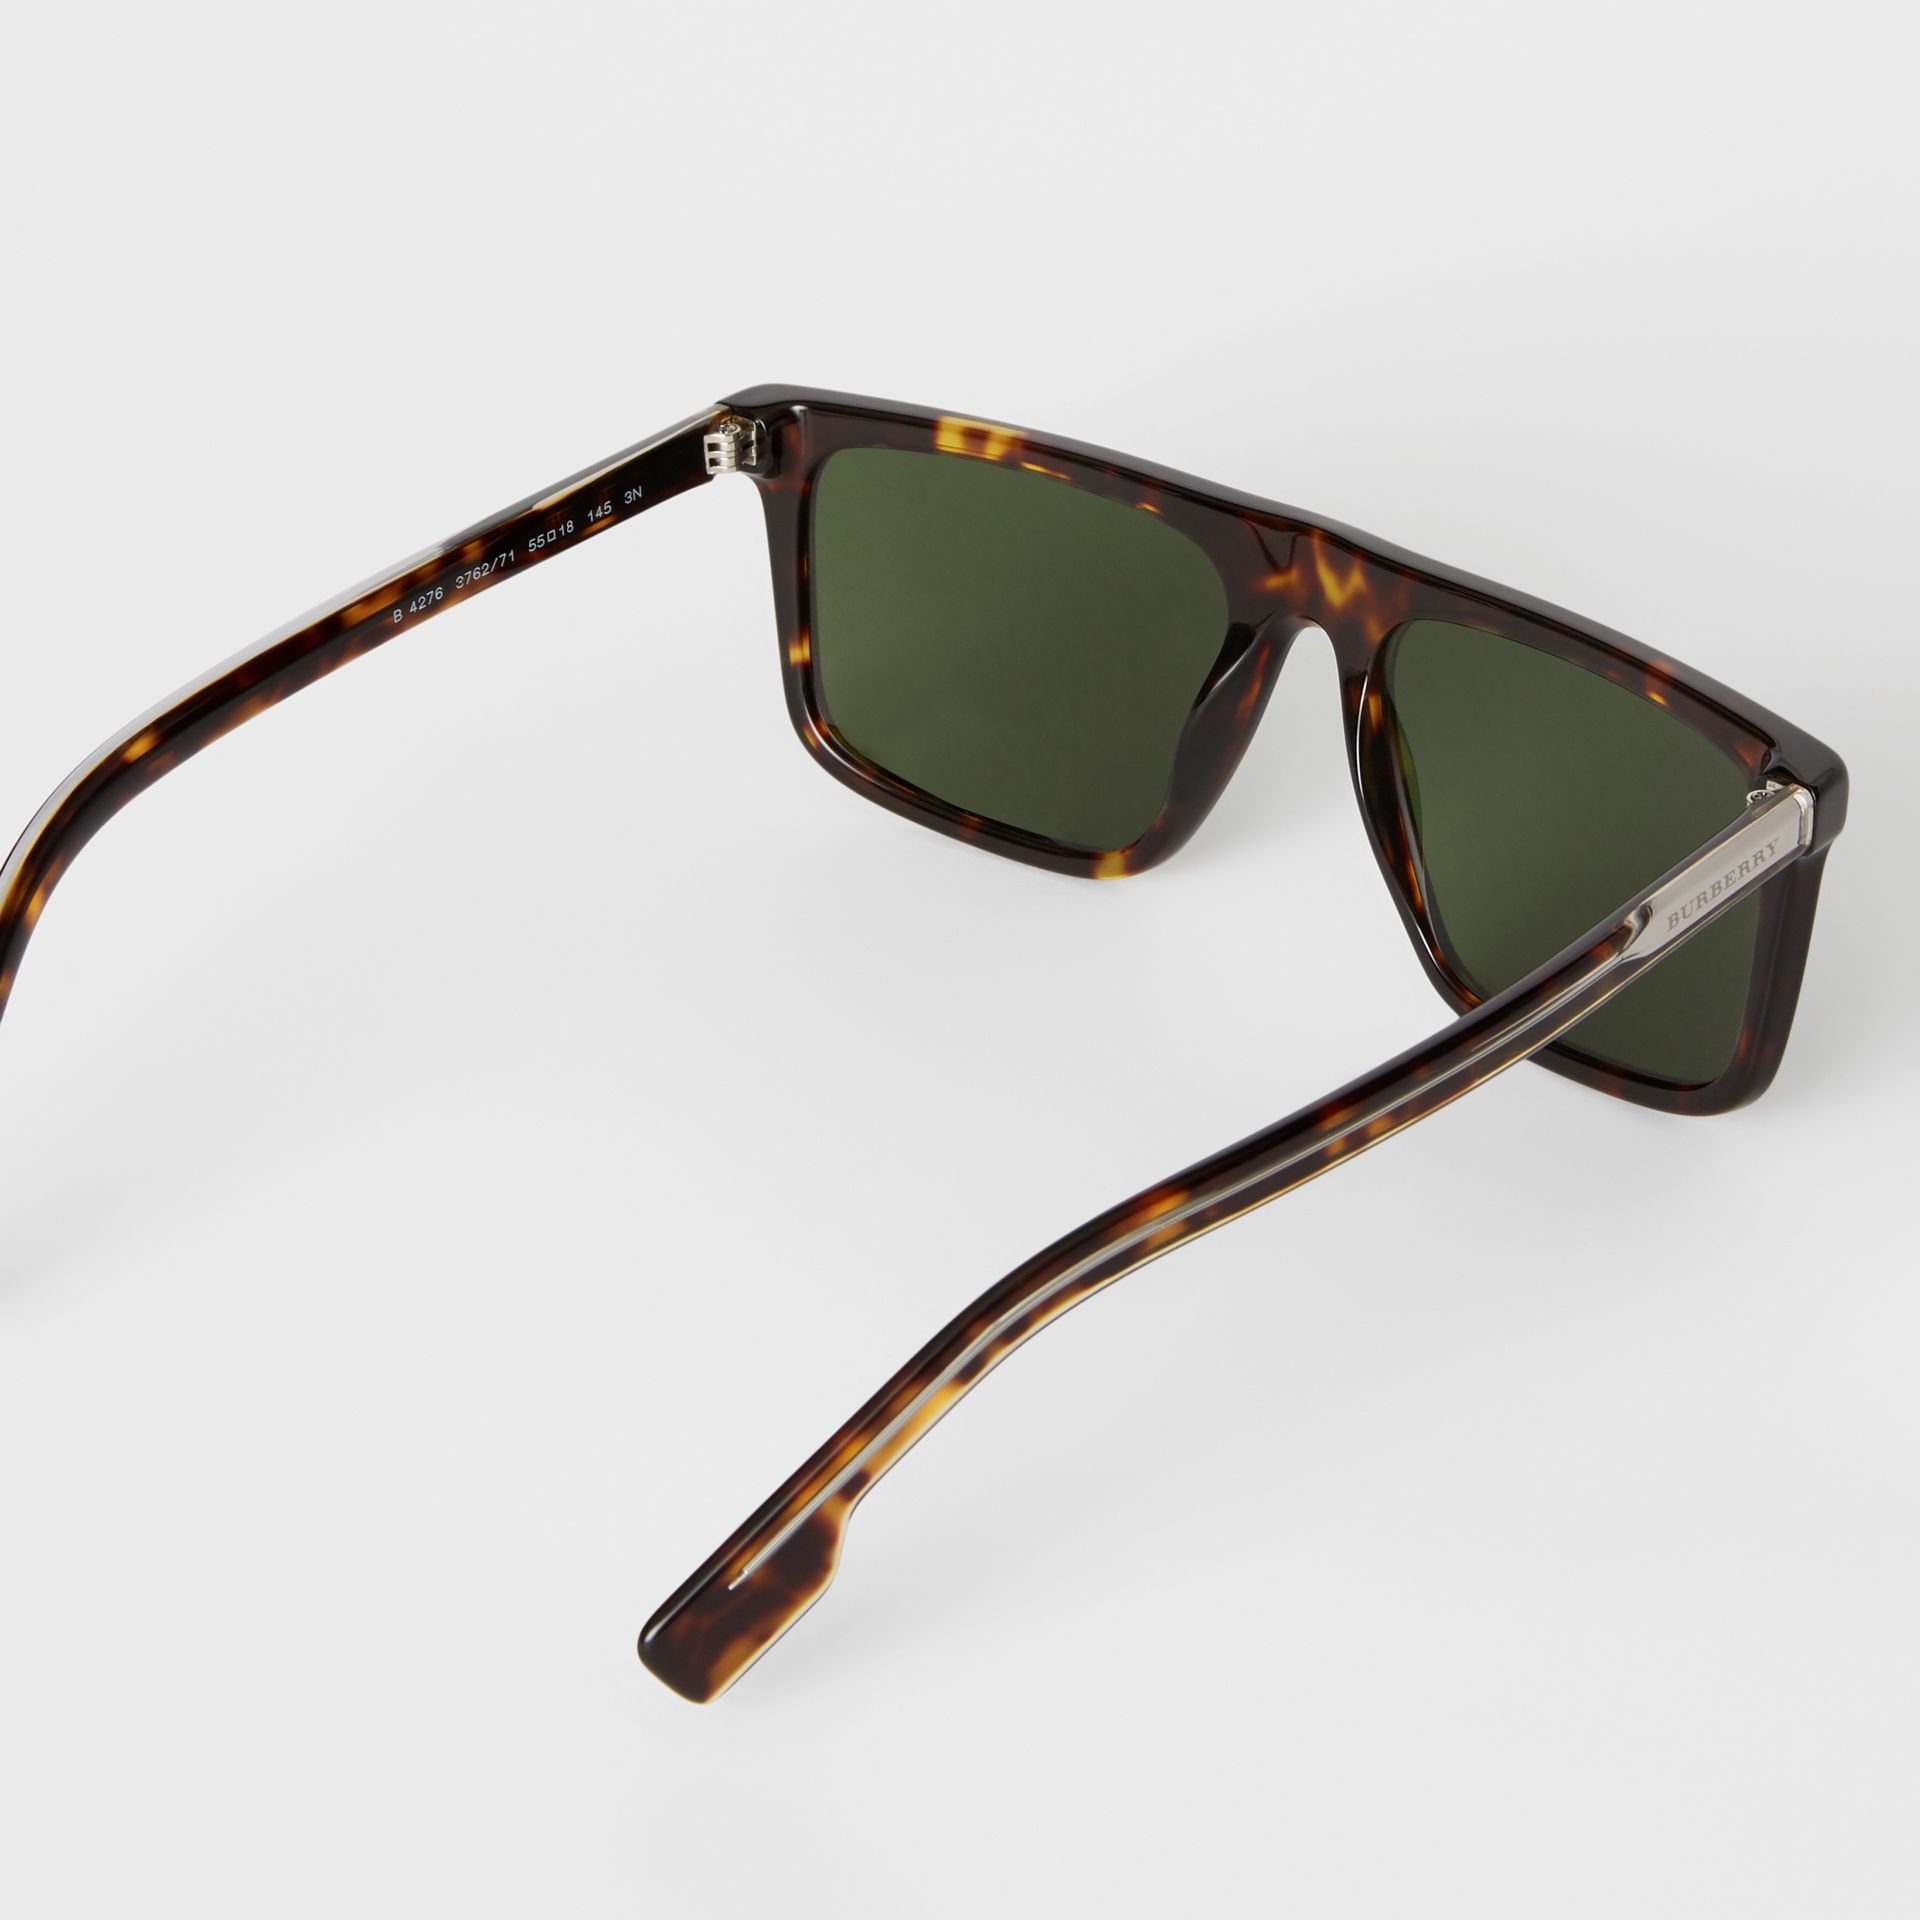 Straight-brow Sunglasses in Tortoise Shell - Men | Burberry United Kingdom - gallery image 3